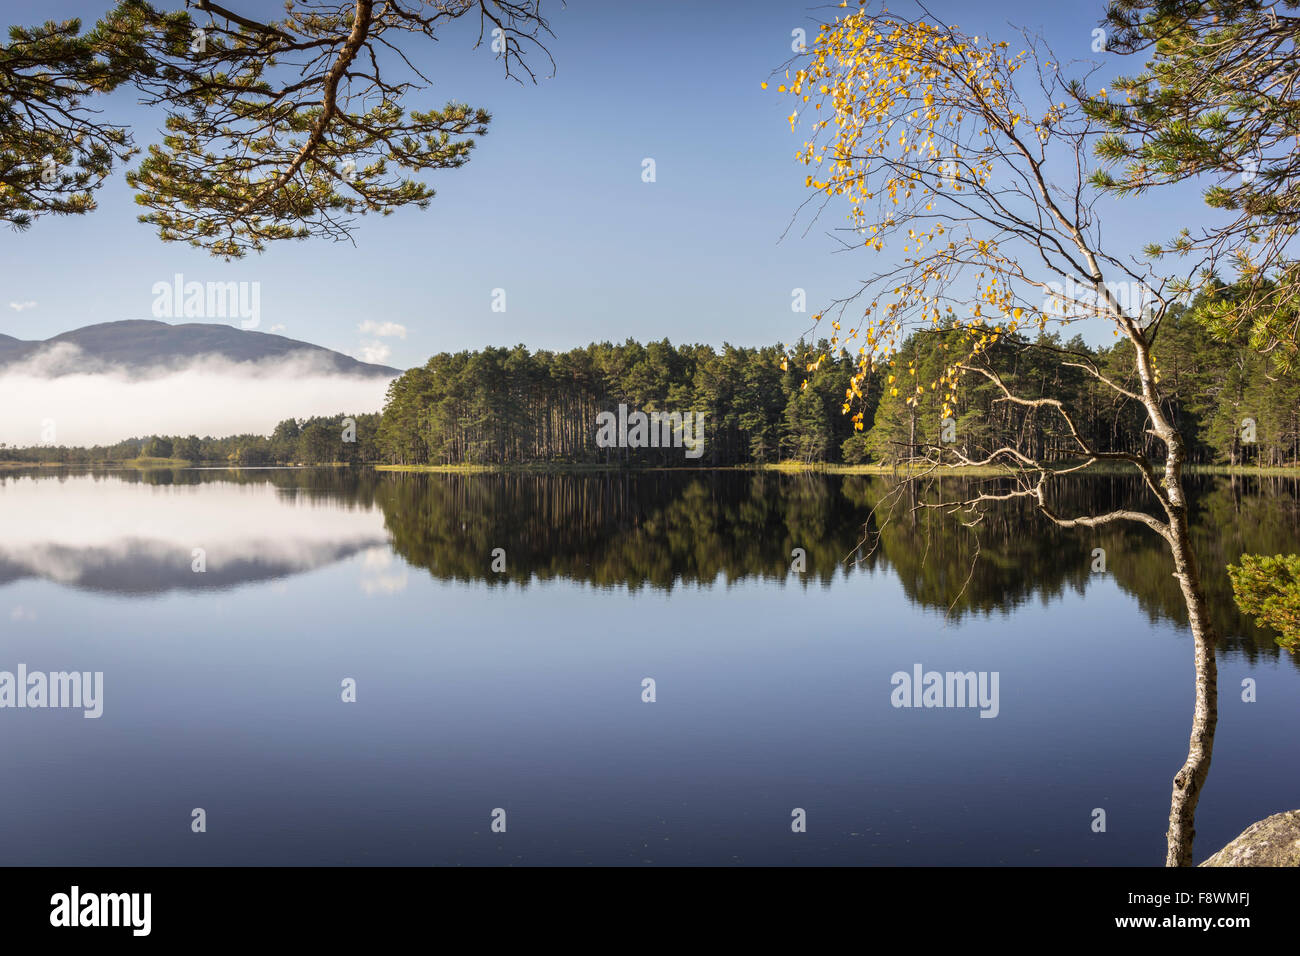 Loch Garten in the Cairngorms National Park of Scotland. Stock Photo